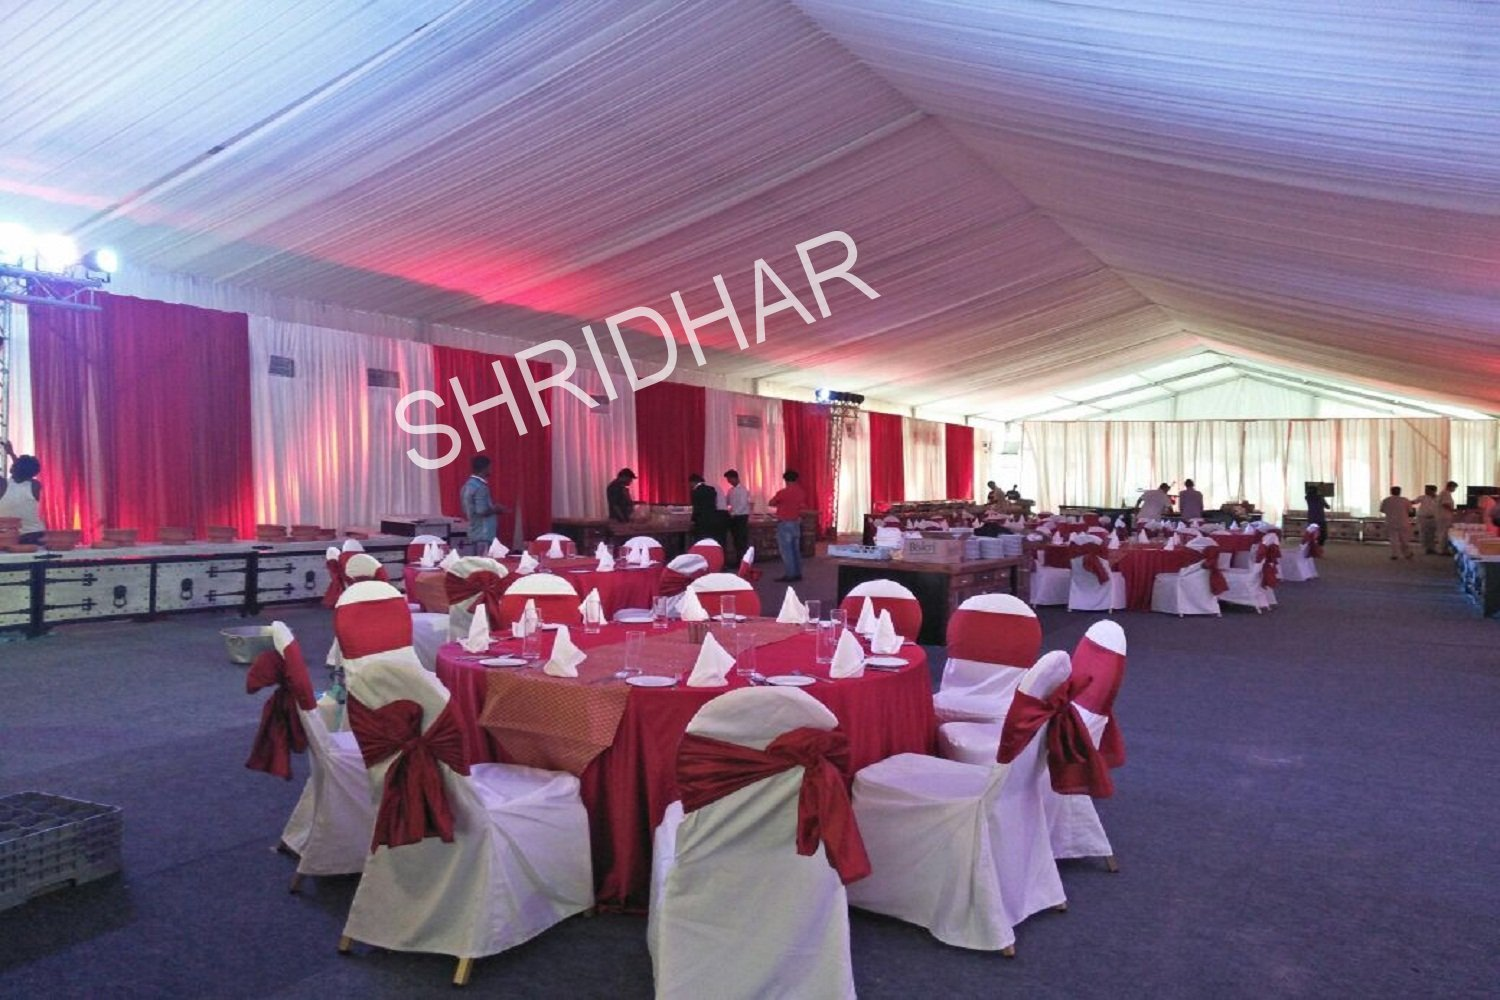 steel chair for tent house cover hire dundee shridhar services supplier in bangalore karnataka banquet tables and chairs rent weddings